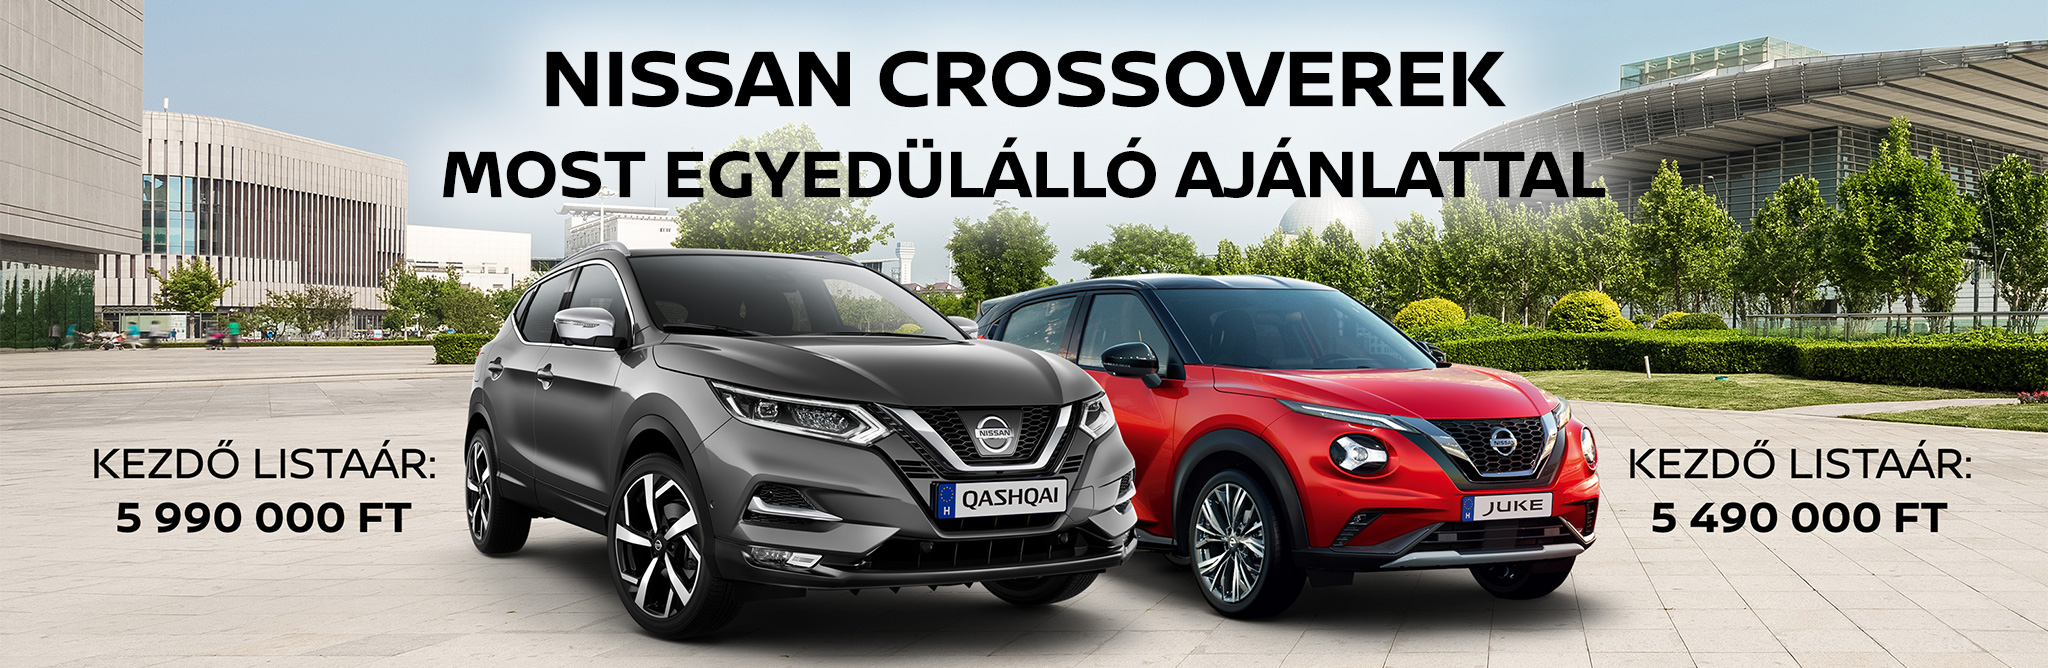 Nissan Crossoverek